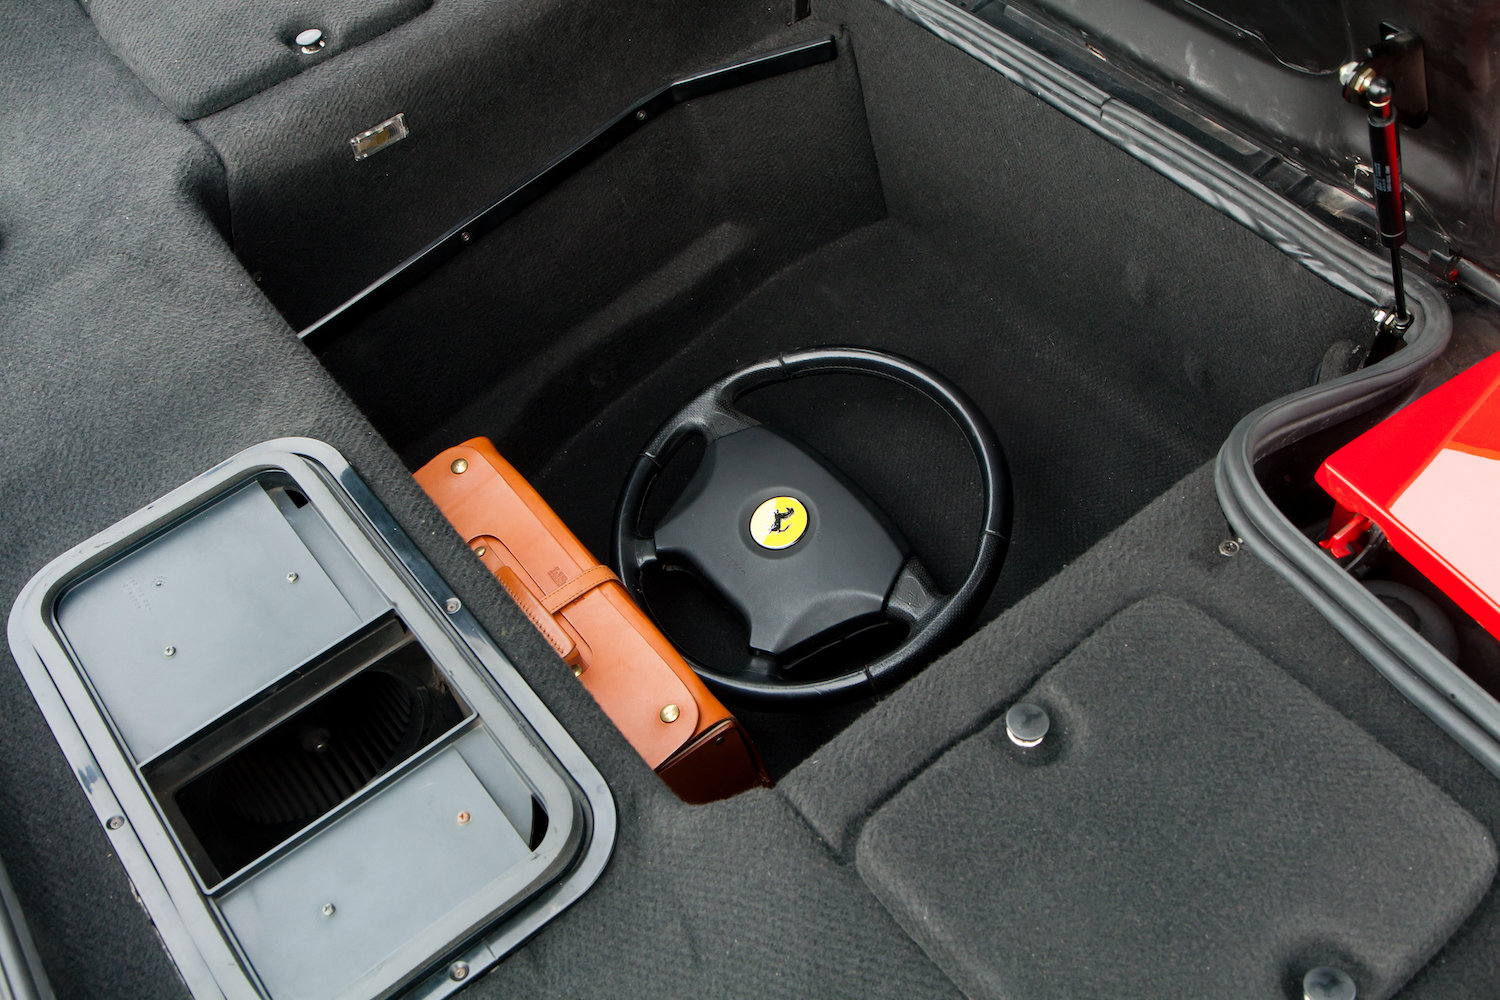 1996 Ferrari F355 Spider Manual LHD For Sale (picture 6 of 6)